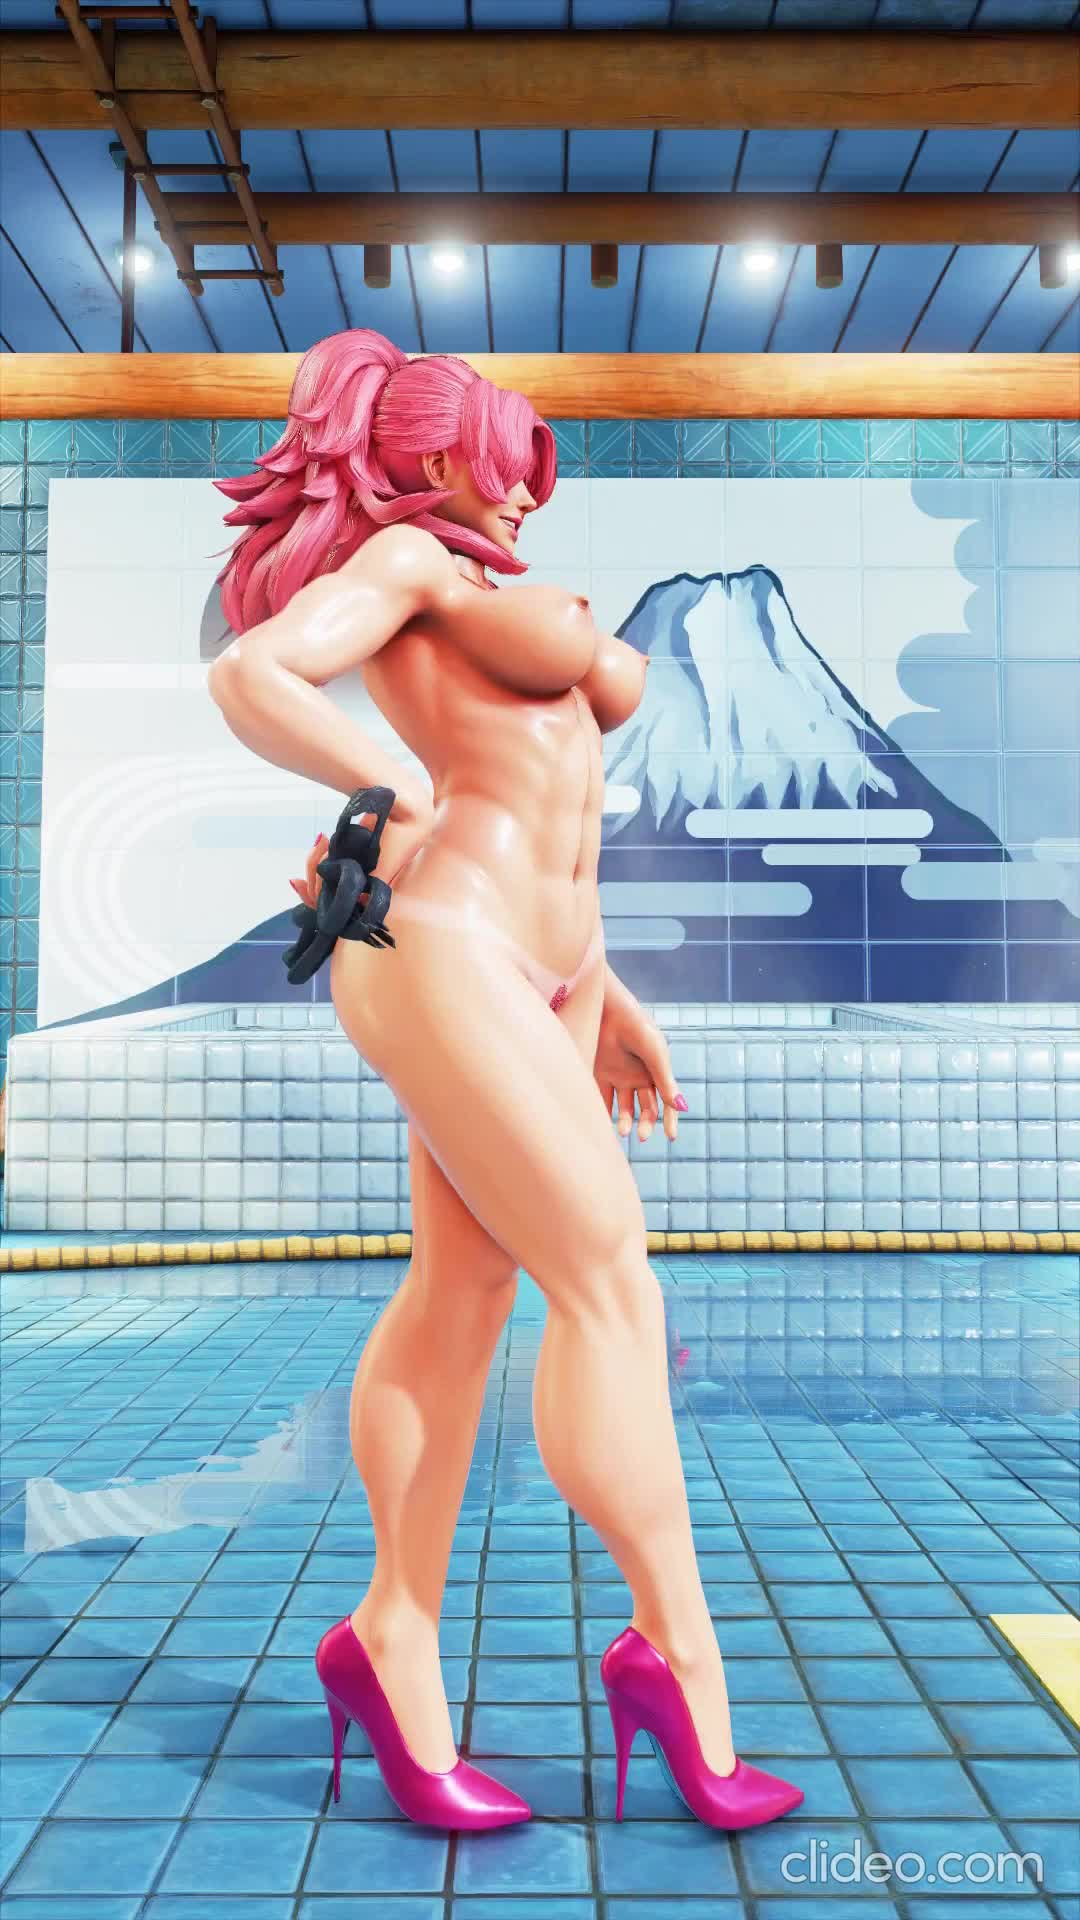 Poison has some beautiful abs